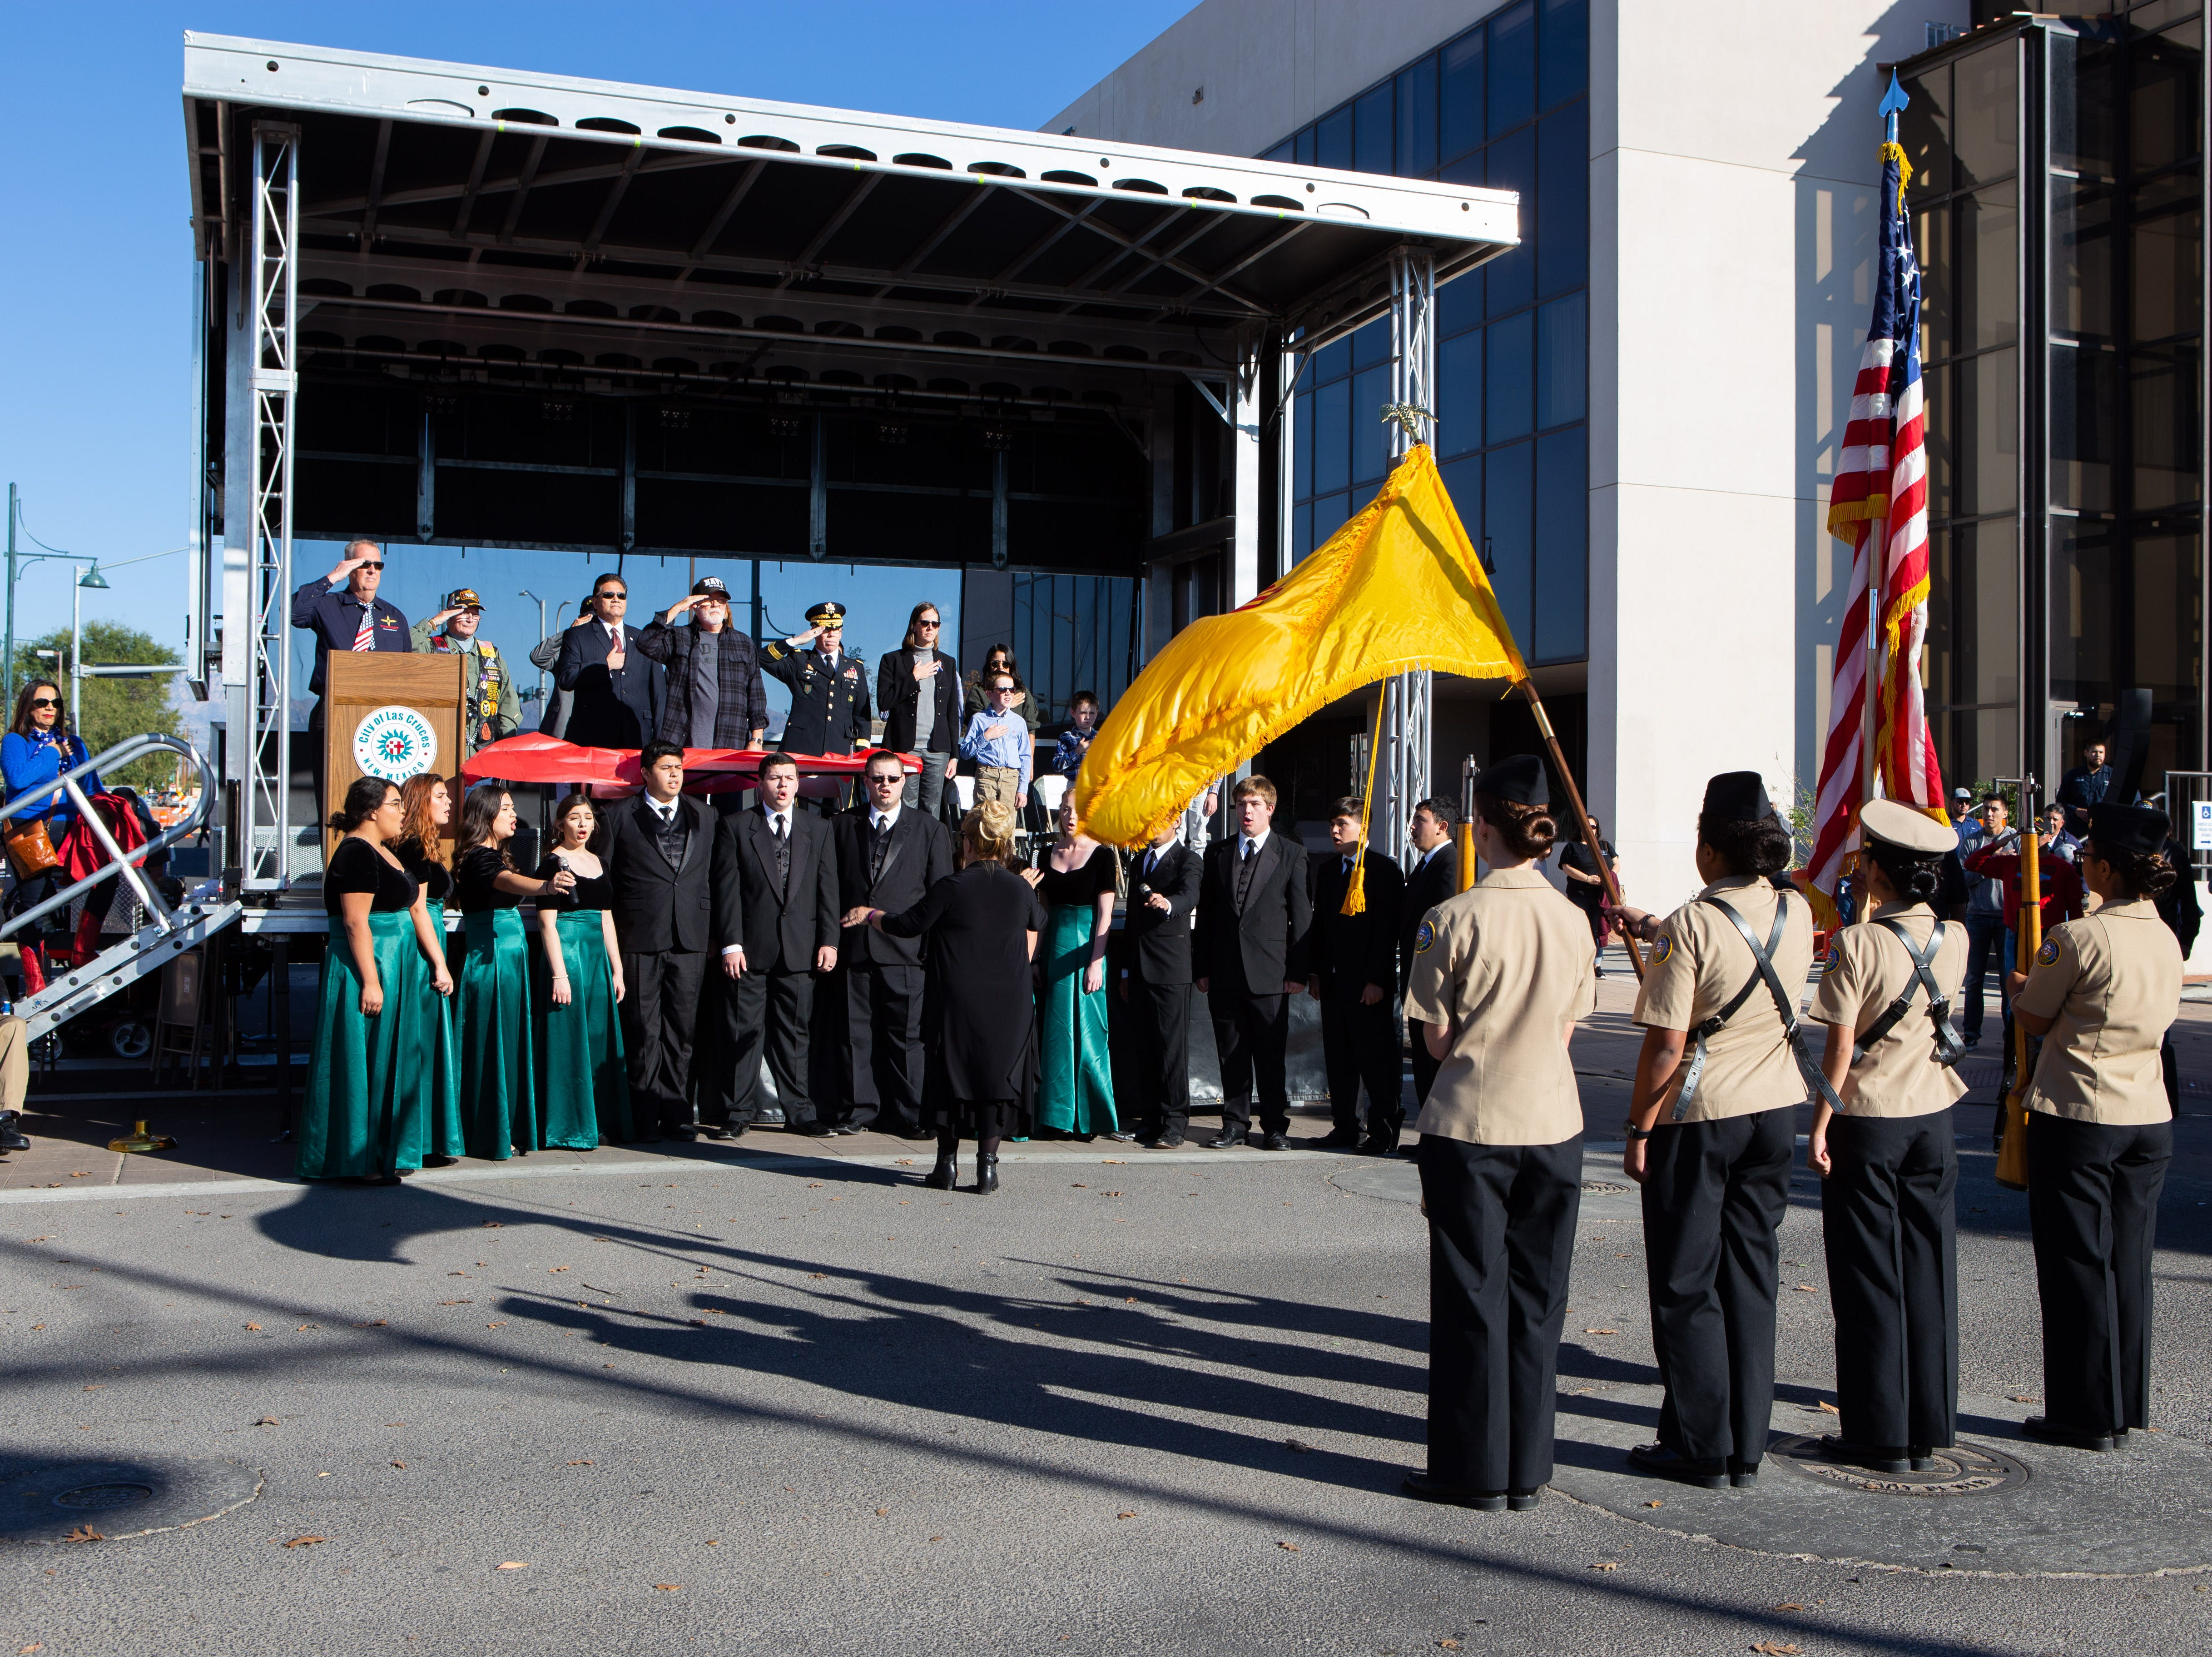 Mayfield High School Madrigal Singers sing the anthem as the colors are presented by the Onate High School Navy JROTC. The Veterans Day Parade was held on November 10, 2018.